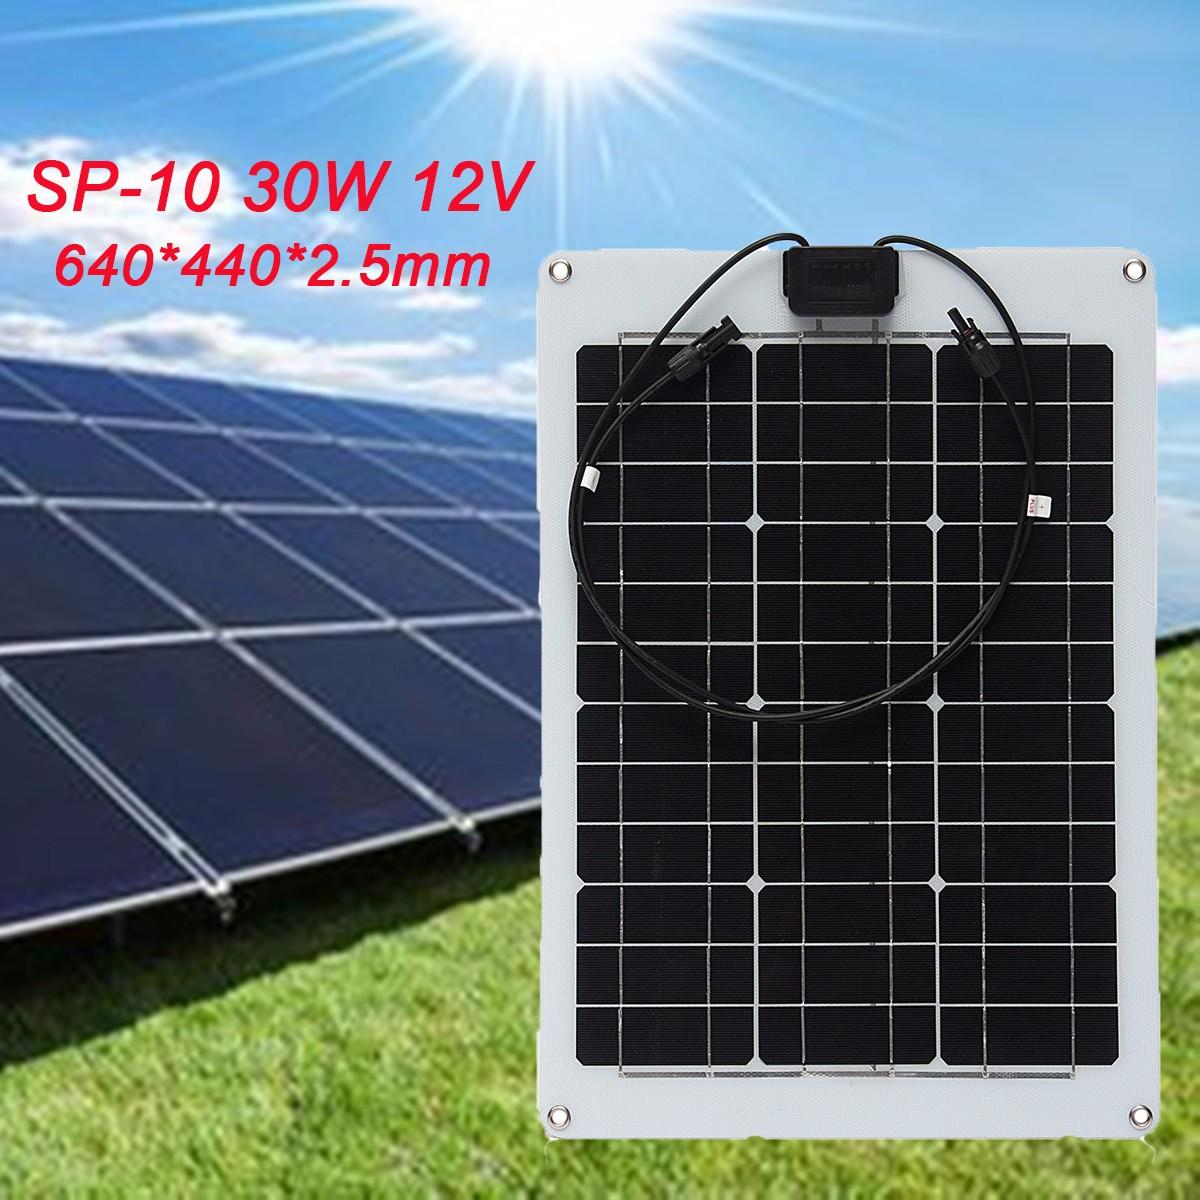 KINCO 30W 12V Sunpower Efficient single crystal flexible solar panels For Car Battery Phone Charger RT Boat High Conversion Rate